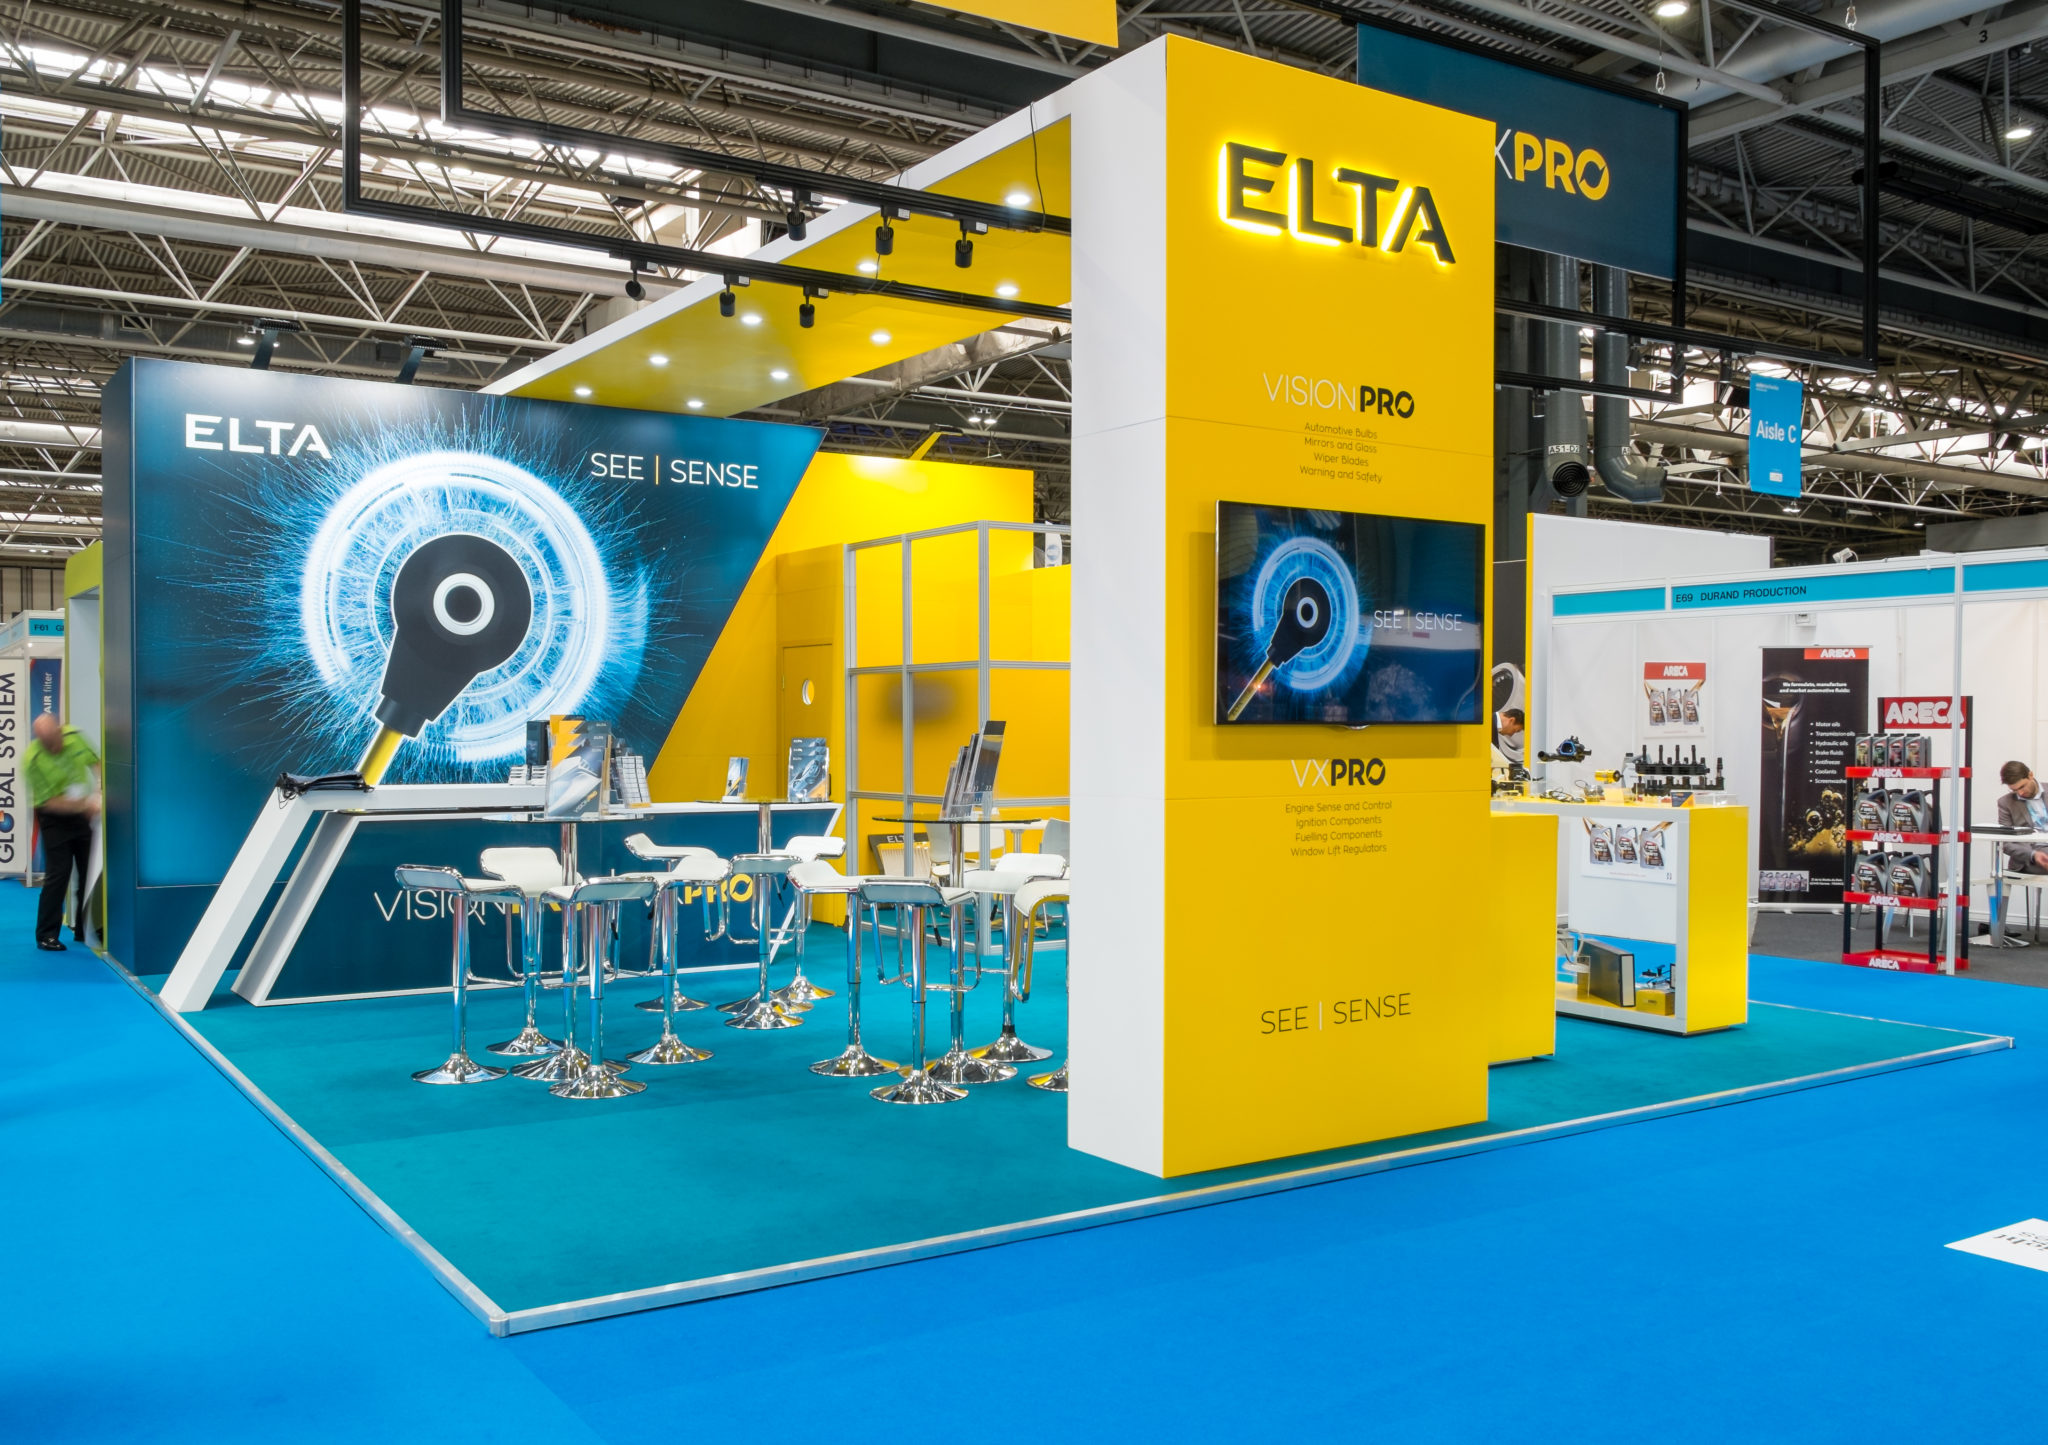 ELTA Stand at Automechanika Birmingham